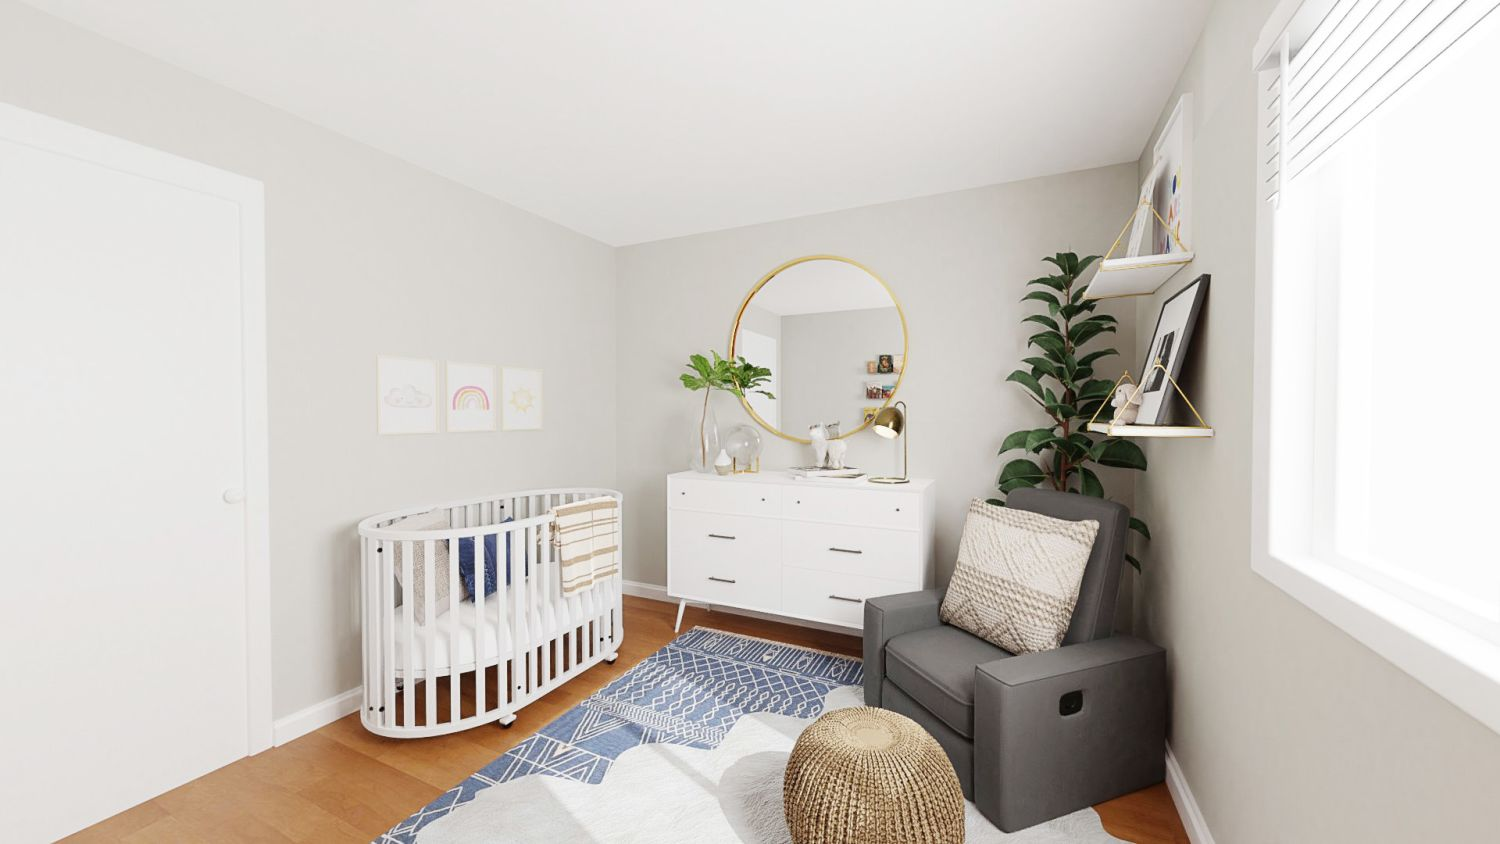 Cozy + Neutral: Modern Minimalist Nursery Design By Spacejoy